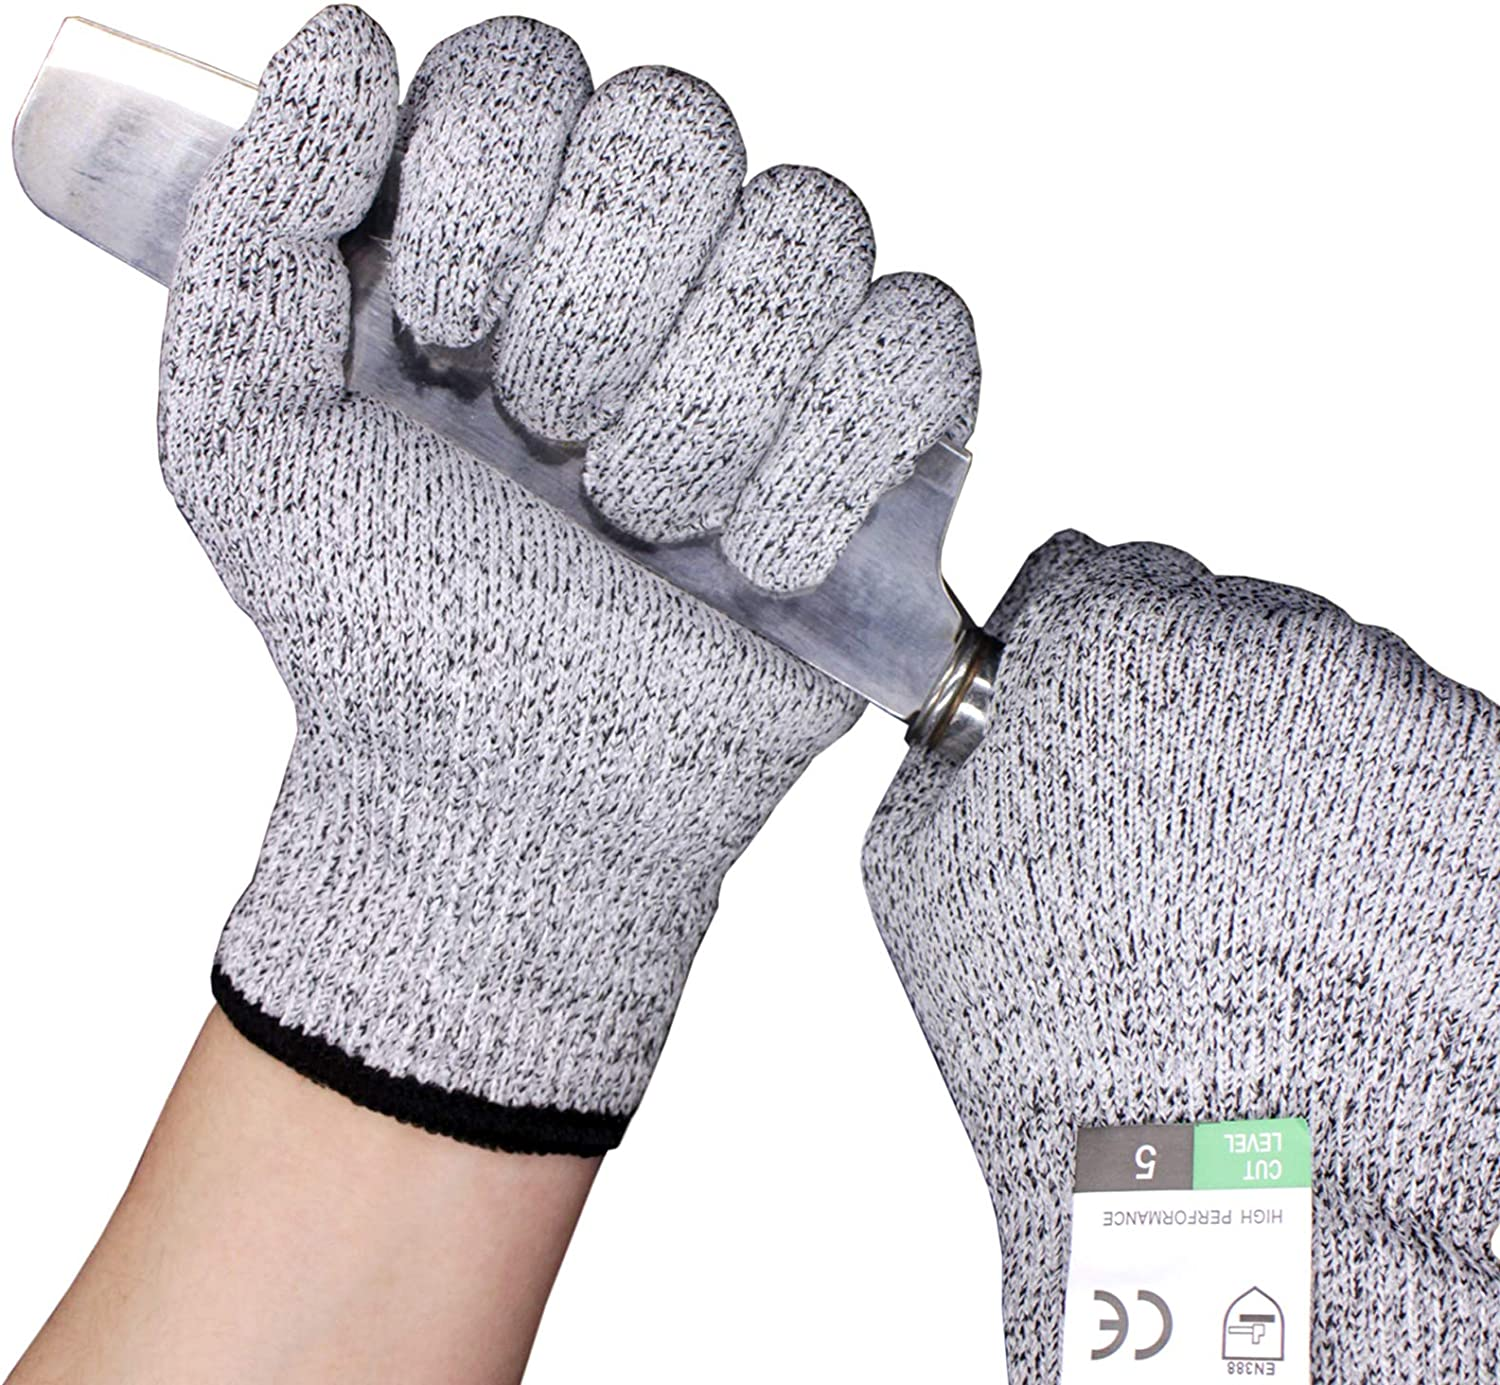 Cut Resistant Gloves, Food Grade and High Performance Level 5 Protection , Wood Carving and garden work.